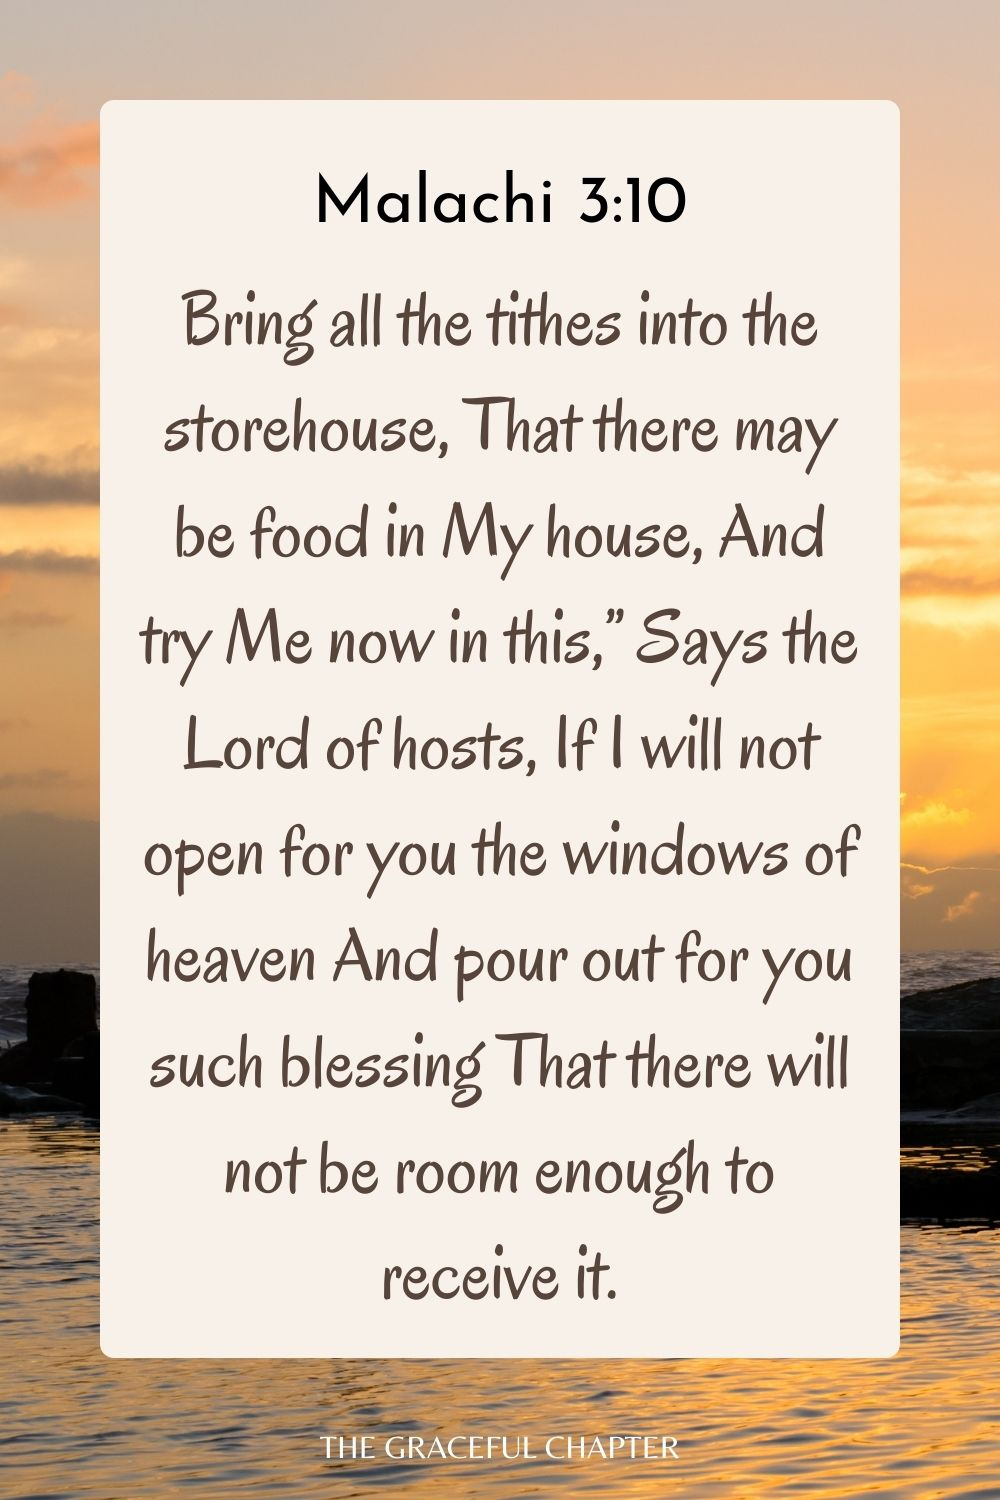 """Bring all the tithes into the storehouse, That there may be food in My house, And try Me now in this,"""" Says the Lord of hosts, If I will not open for you the windows of heaven And pour out for you such blessing That there will not be room enough to receive it. Malachi 3:10"""